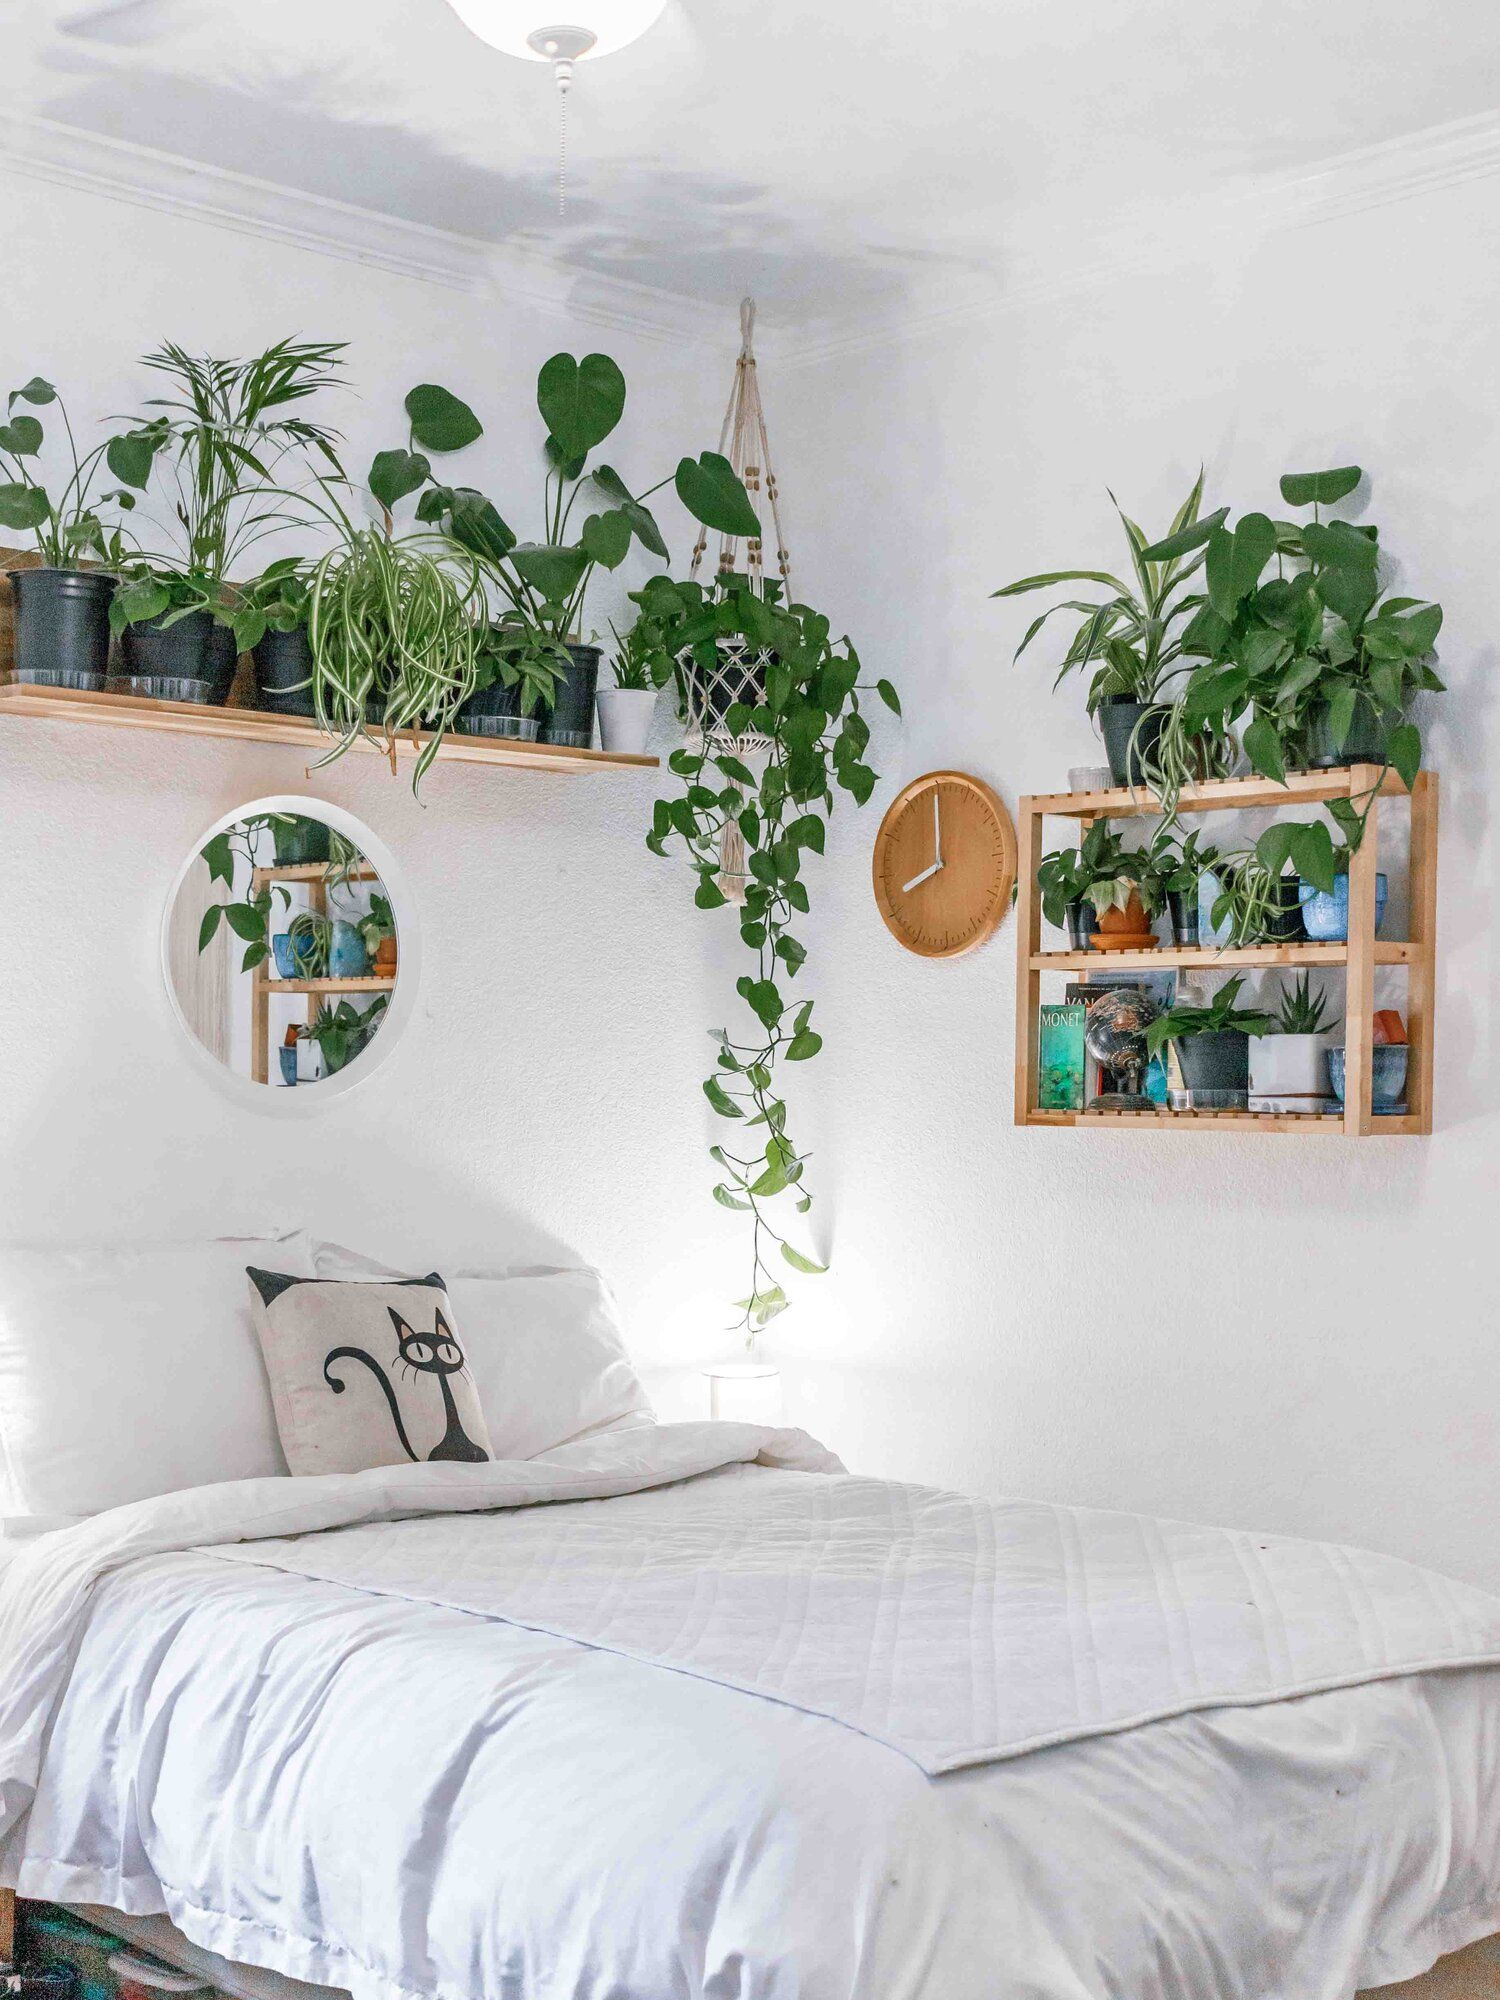 Photo of How to Turn Any Space into an Urban Jungle | Kessler Ramirez Art & Travel